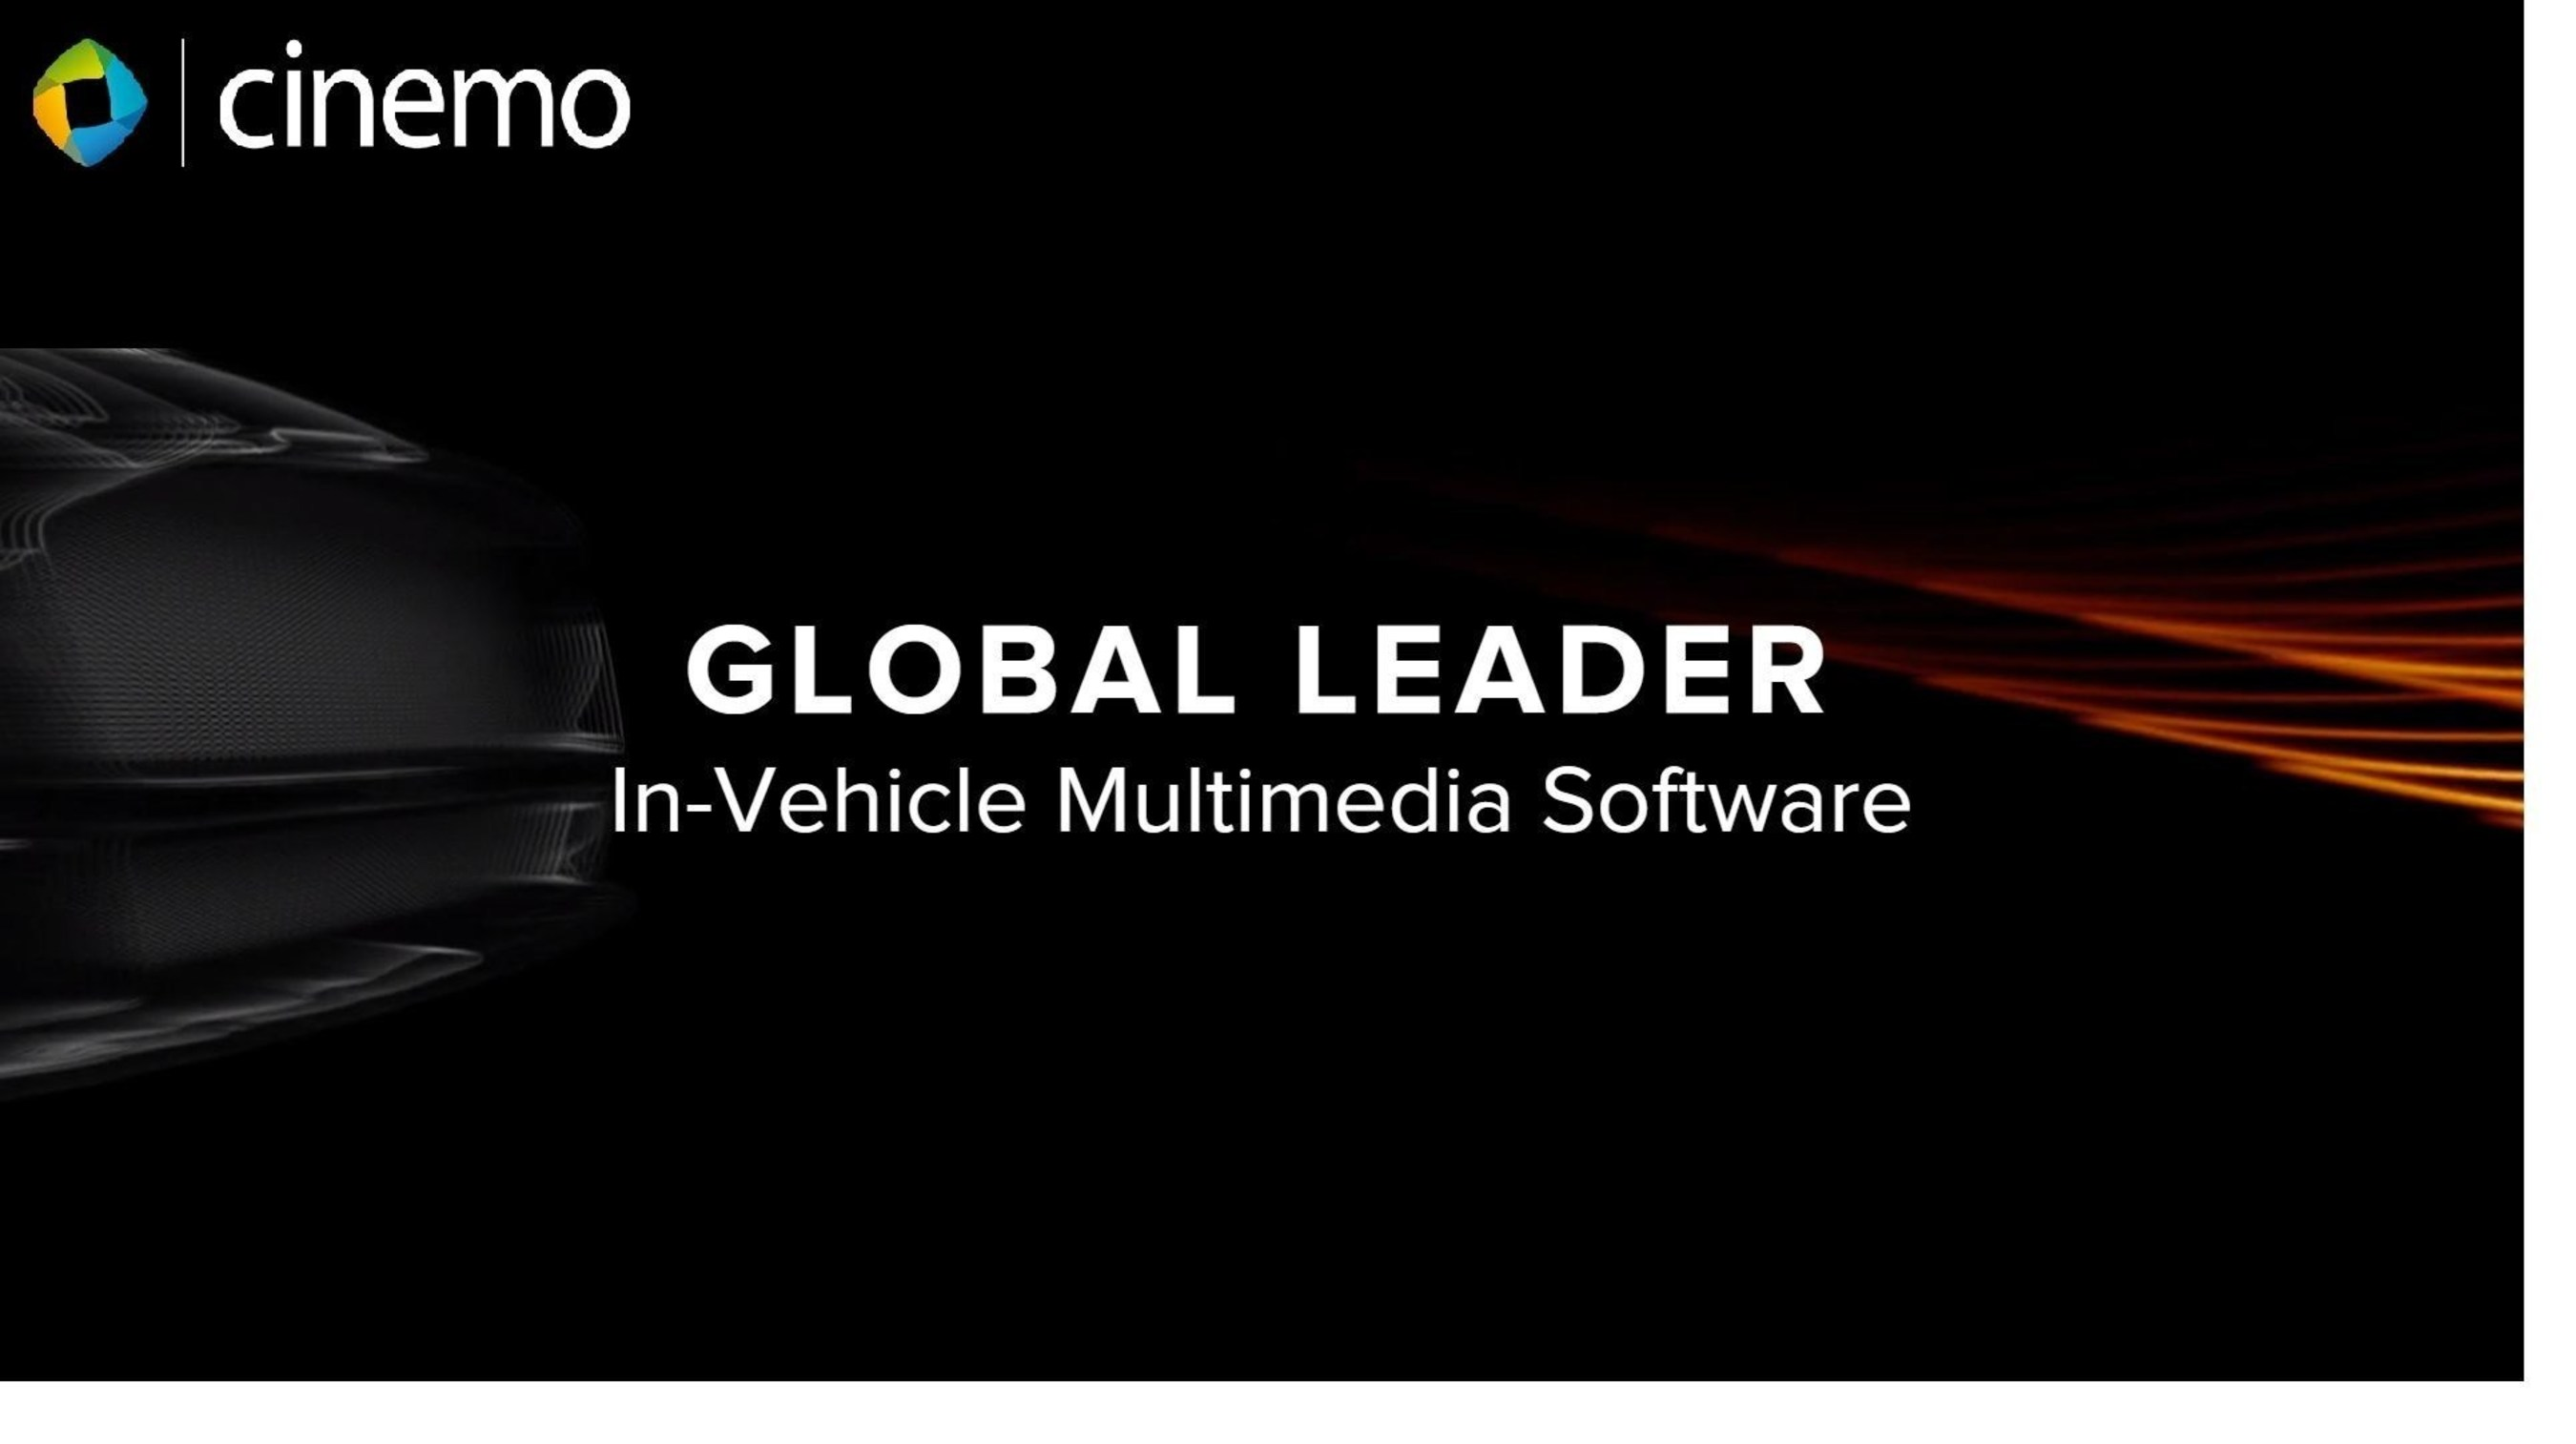 Cinemo is a global leader in automotive grade multimedia playback, streaming, media management and connectivity middleware in the embedded world (PRNewsFoto/Cinemo GmbH) (PRNewsFoto/Cinemo GmbH)